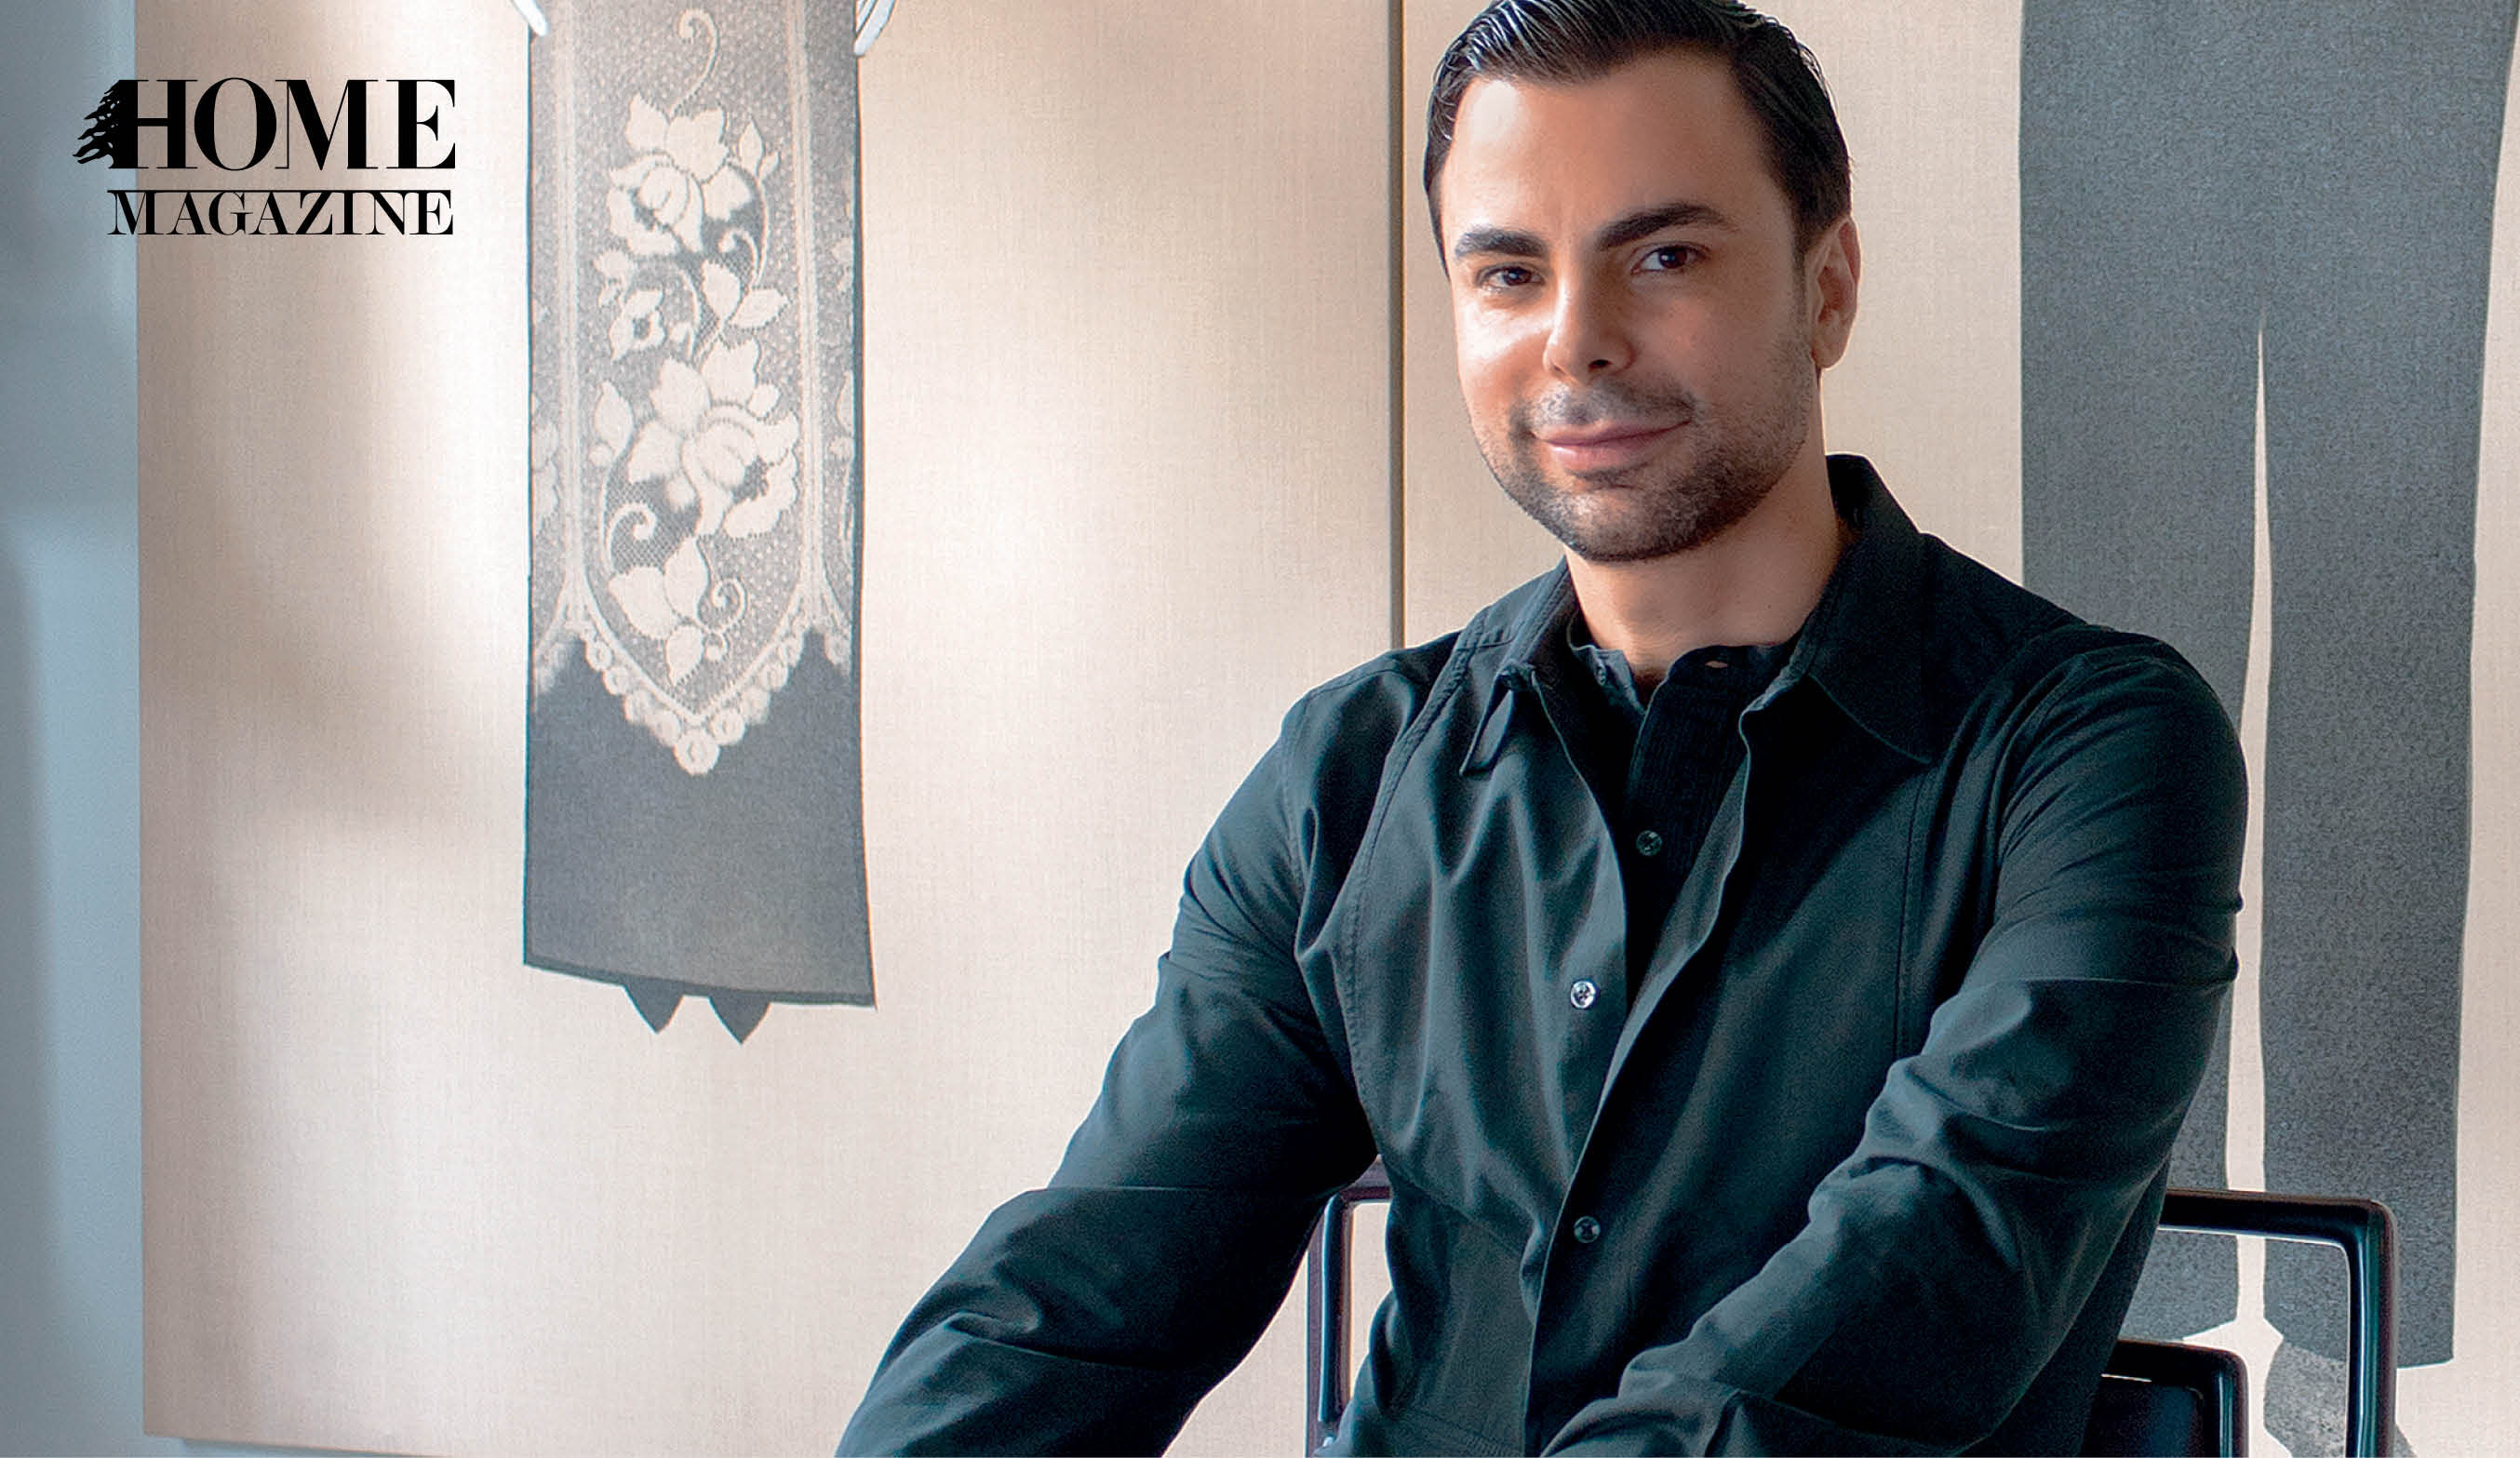 Ramy Boutros: Designing Spaces His Way